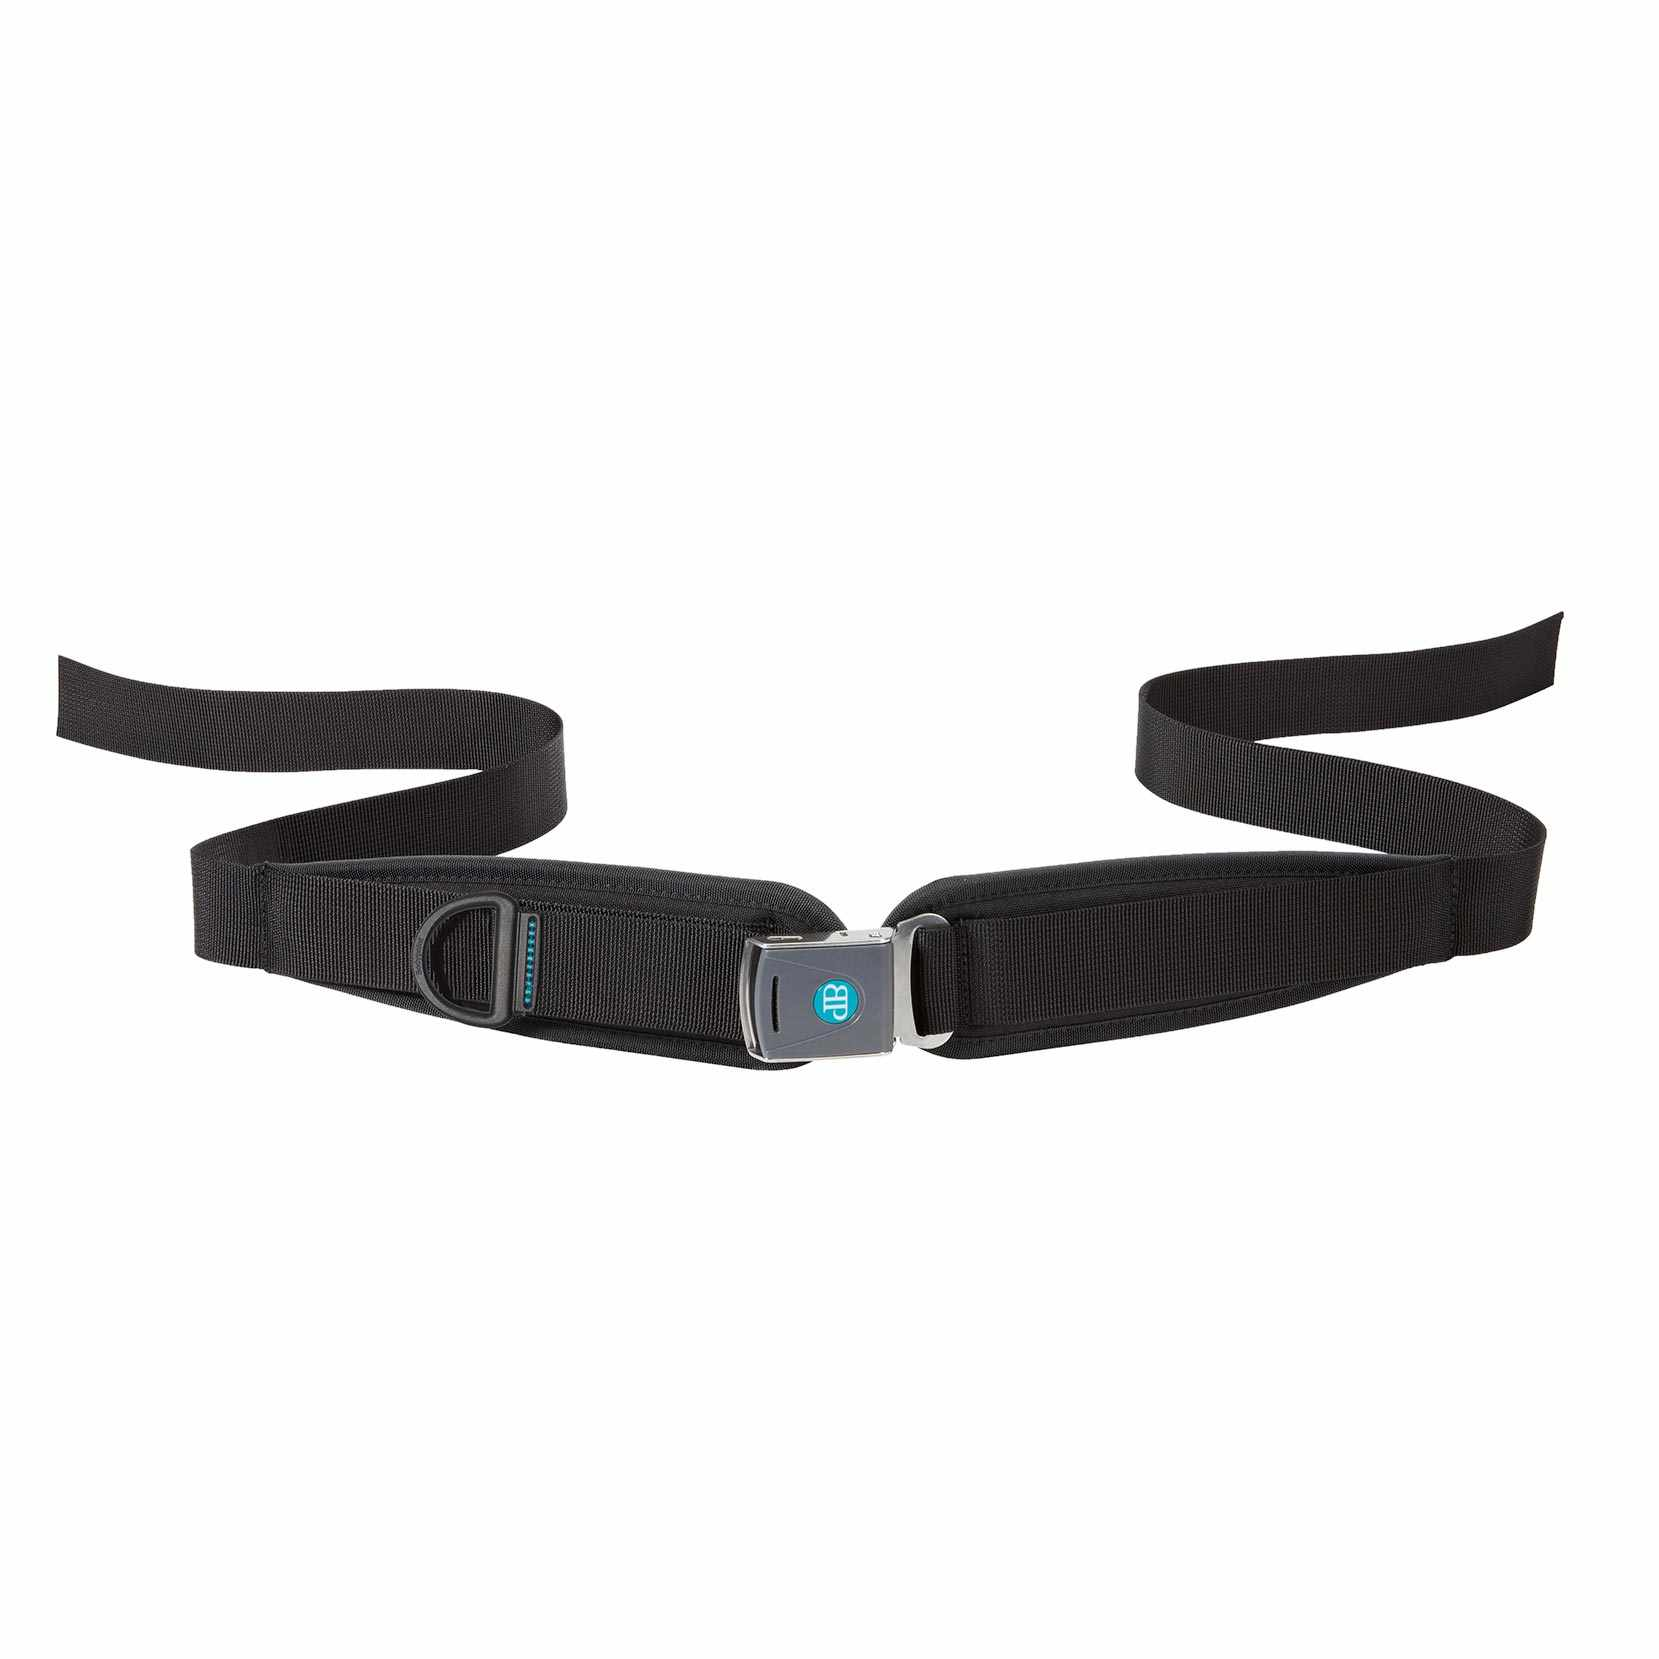 Bodypoint sub-ASIS compatible center-pull two point padded hip belt with rehab latch buckle